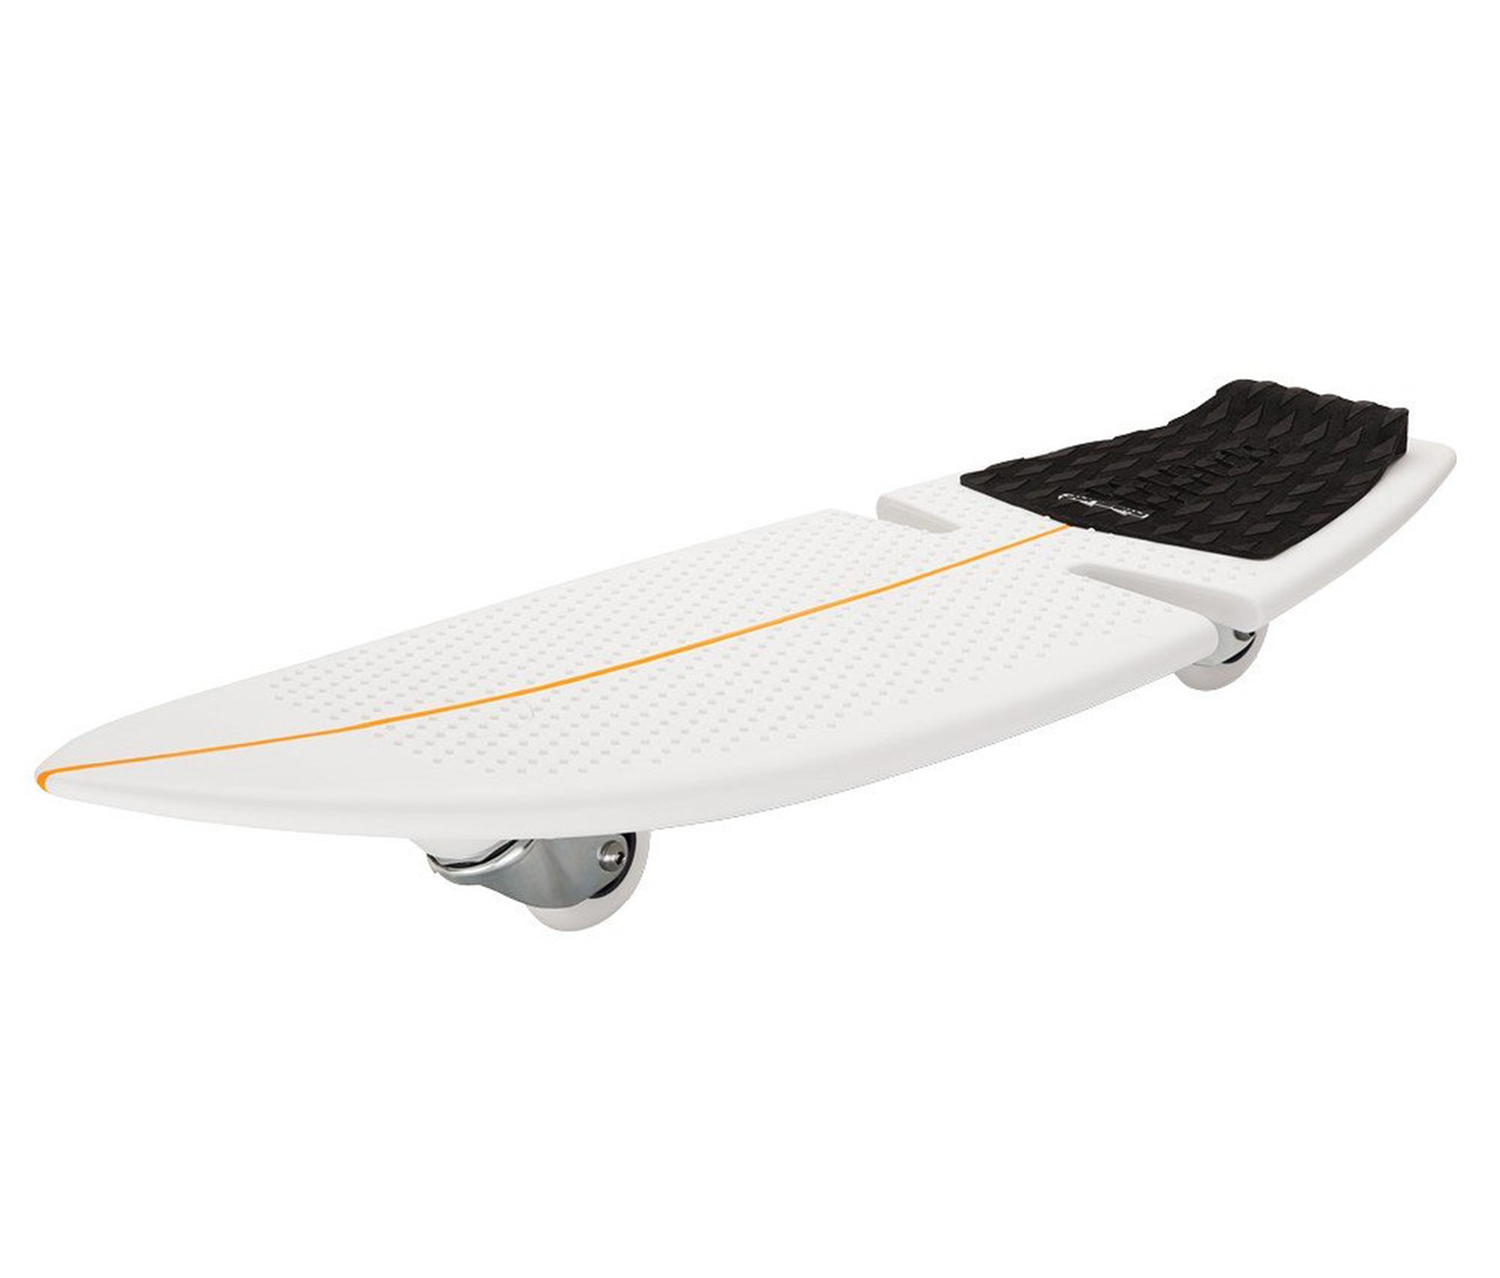 Razor Ripsurf Dry Land Caster Board, White/Black